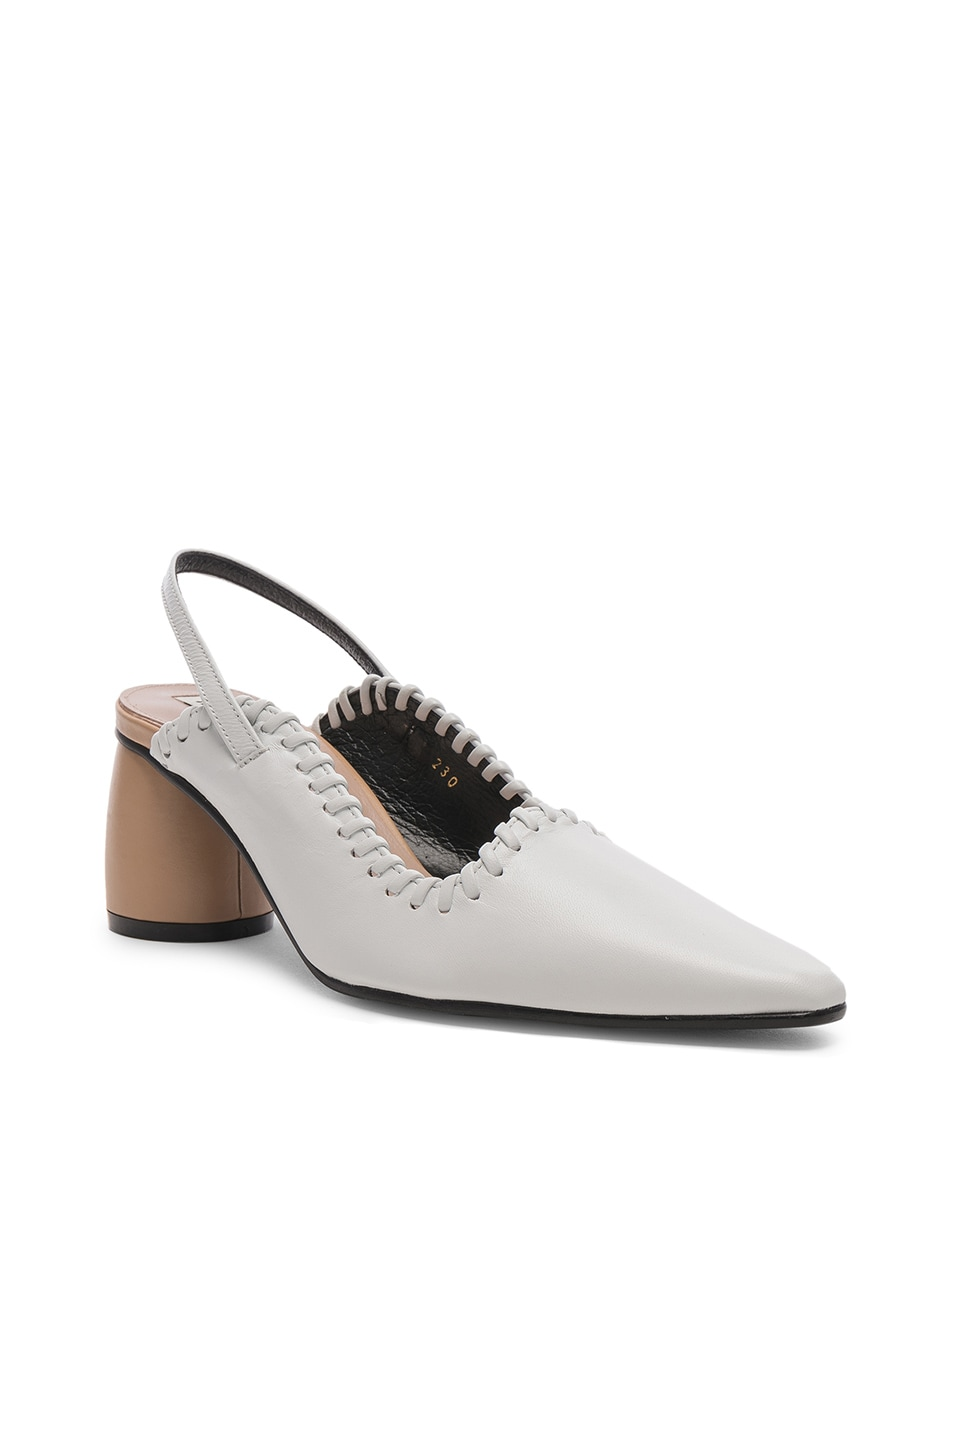 Image 2 of Reike Nen Curved Middle Slingback in White & Beige